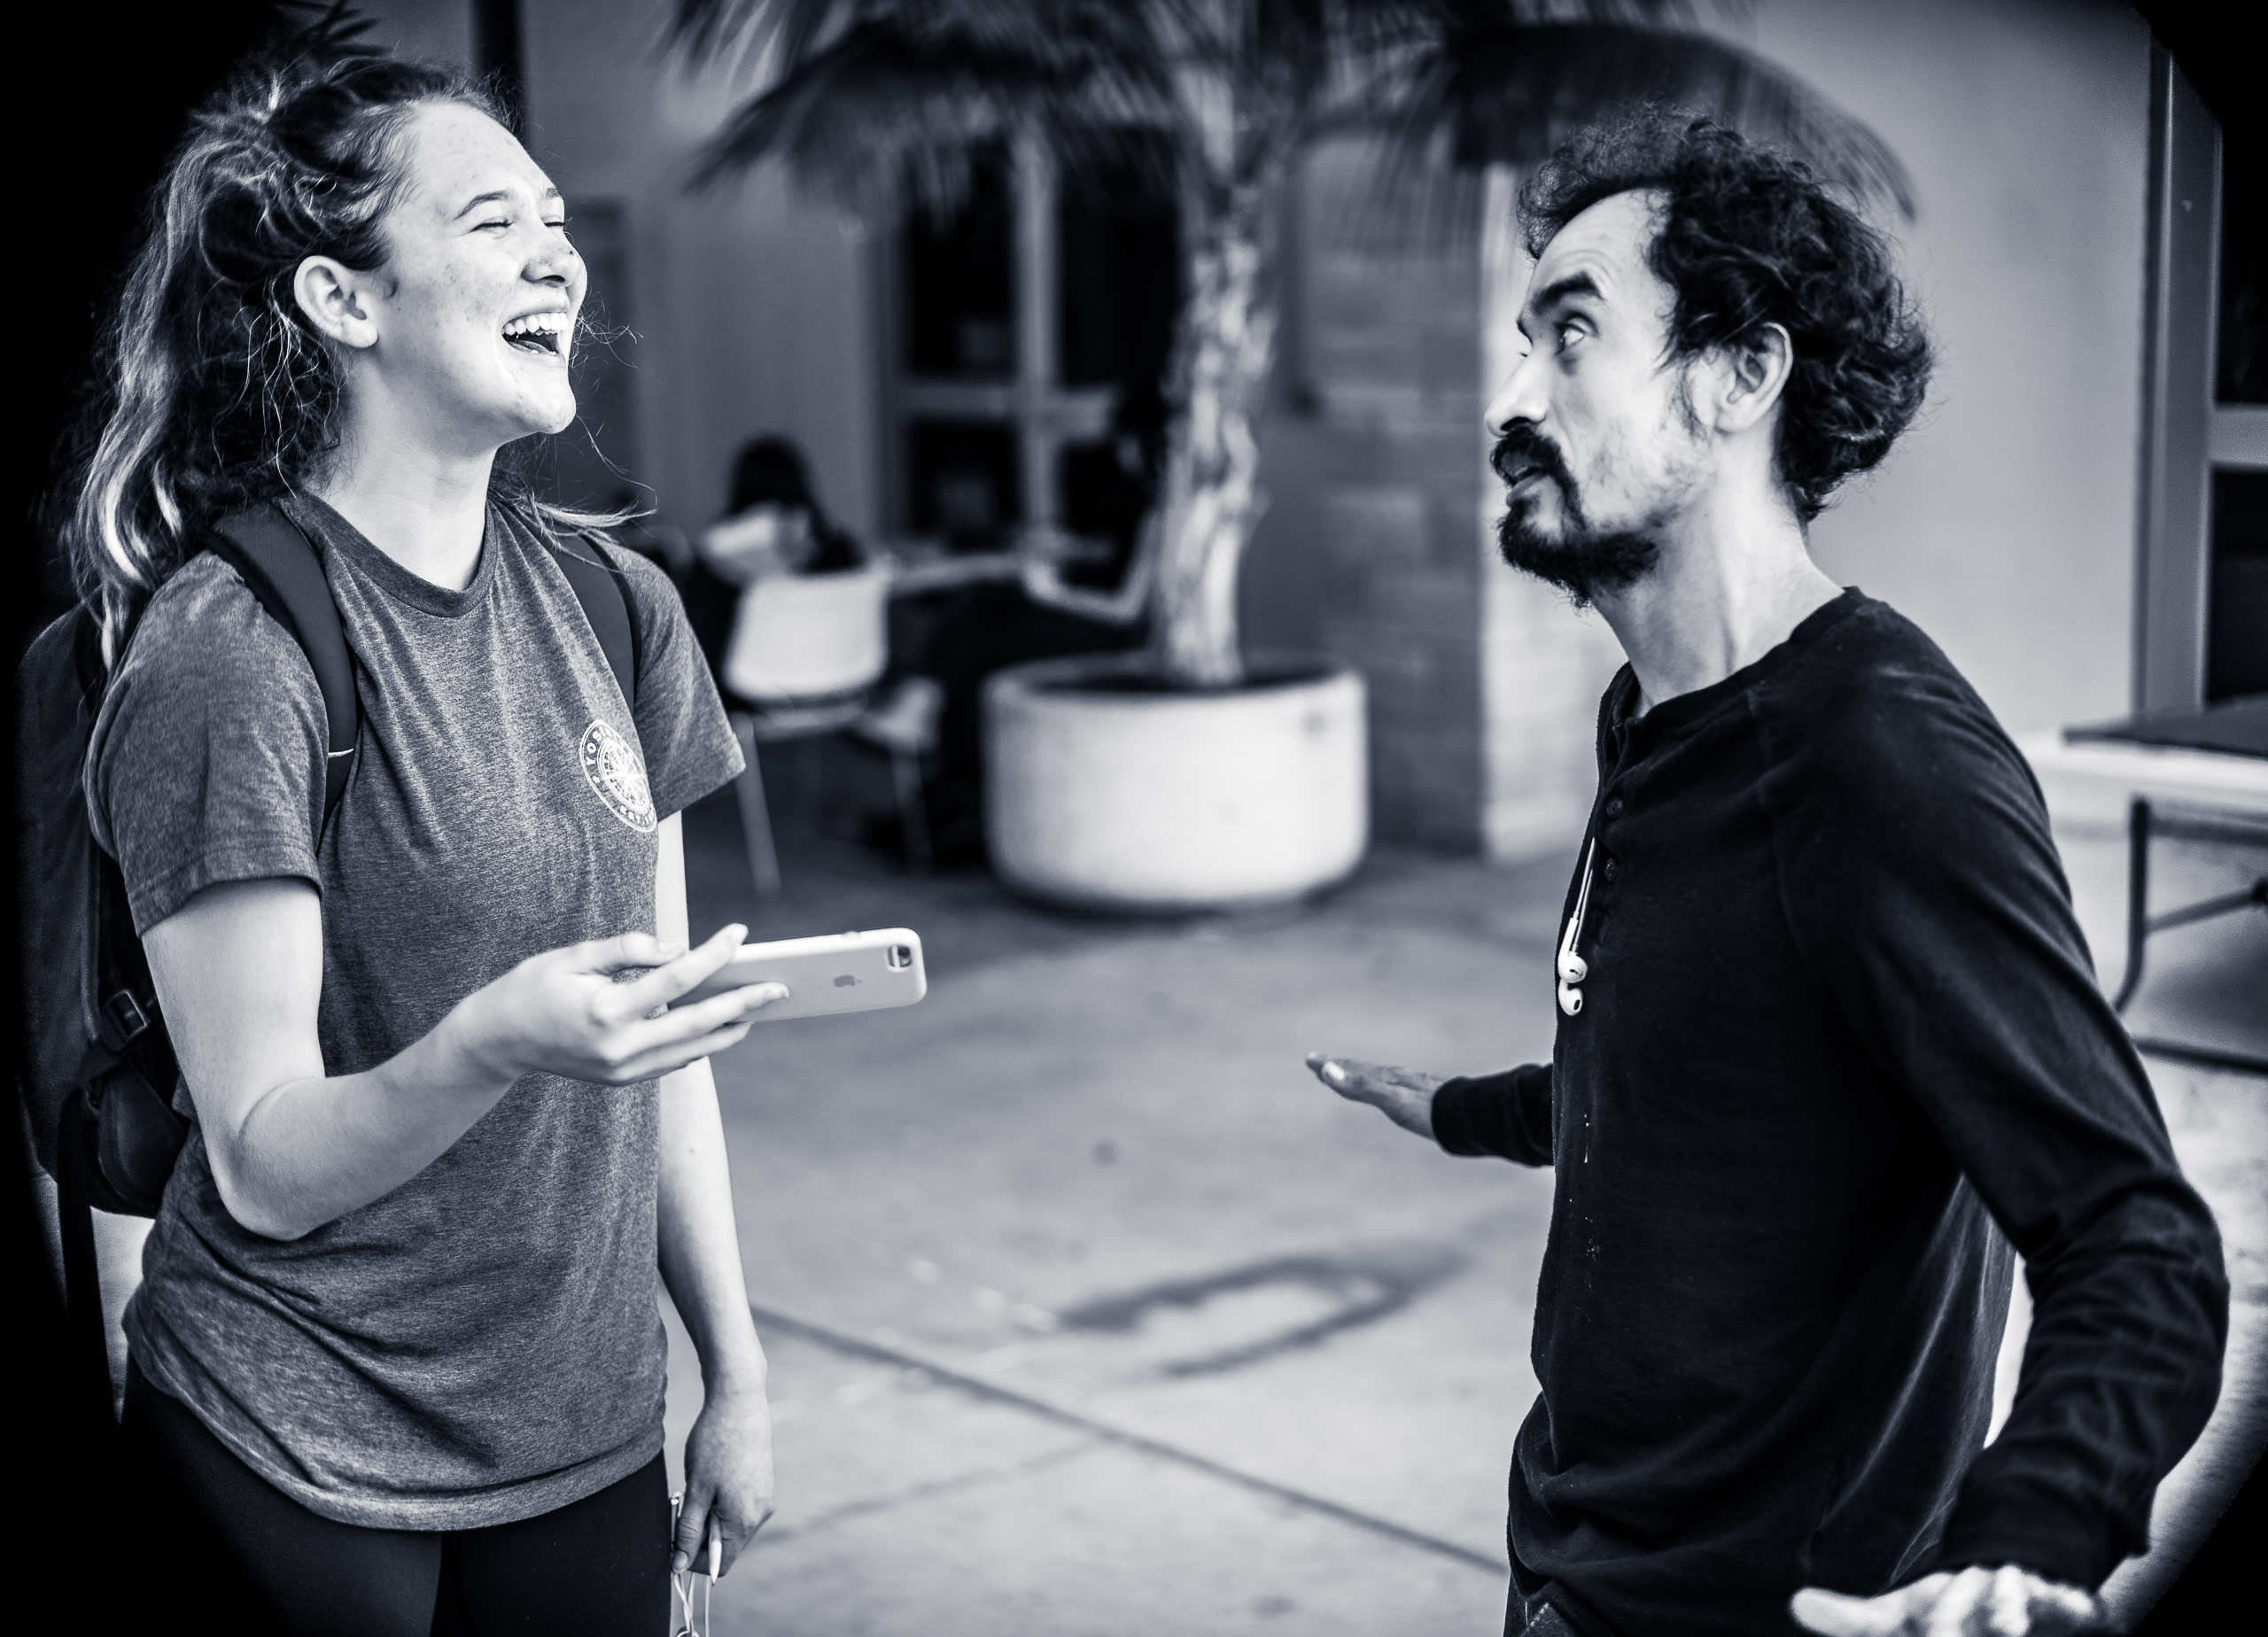 Kaelie Osorio & Alvaro ASF in conversation in the Art Gallery Courtyard at the School of Art at Long Beach State University in Southern California